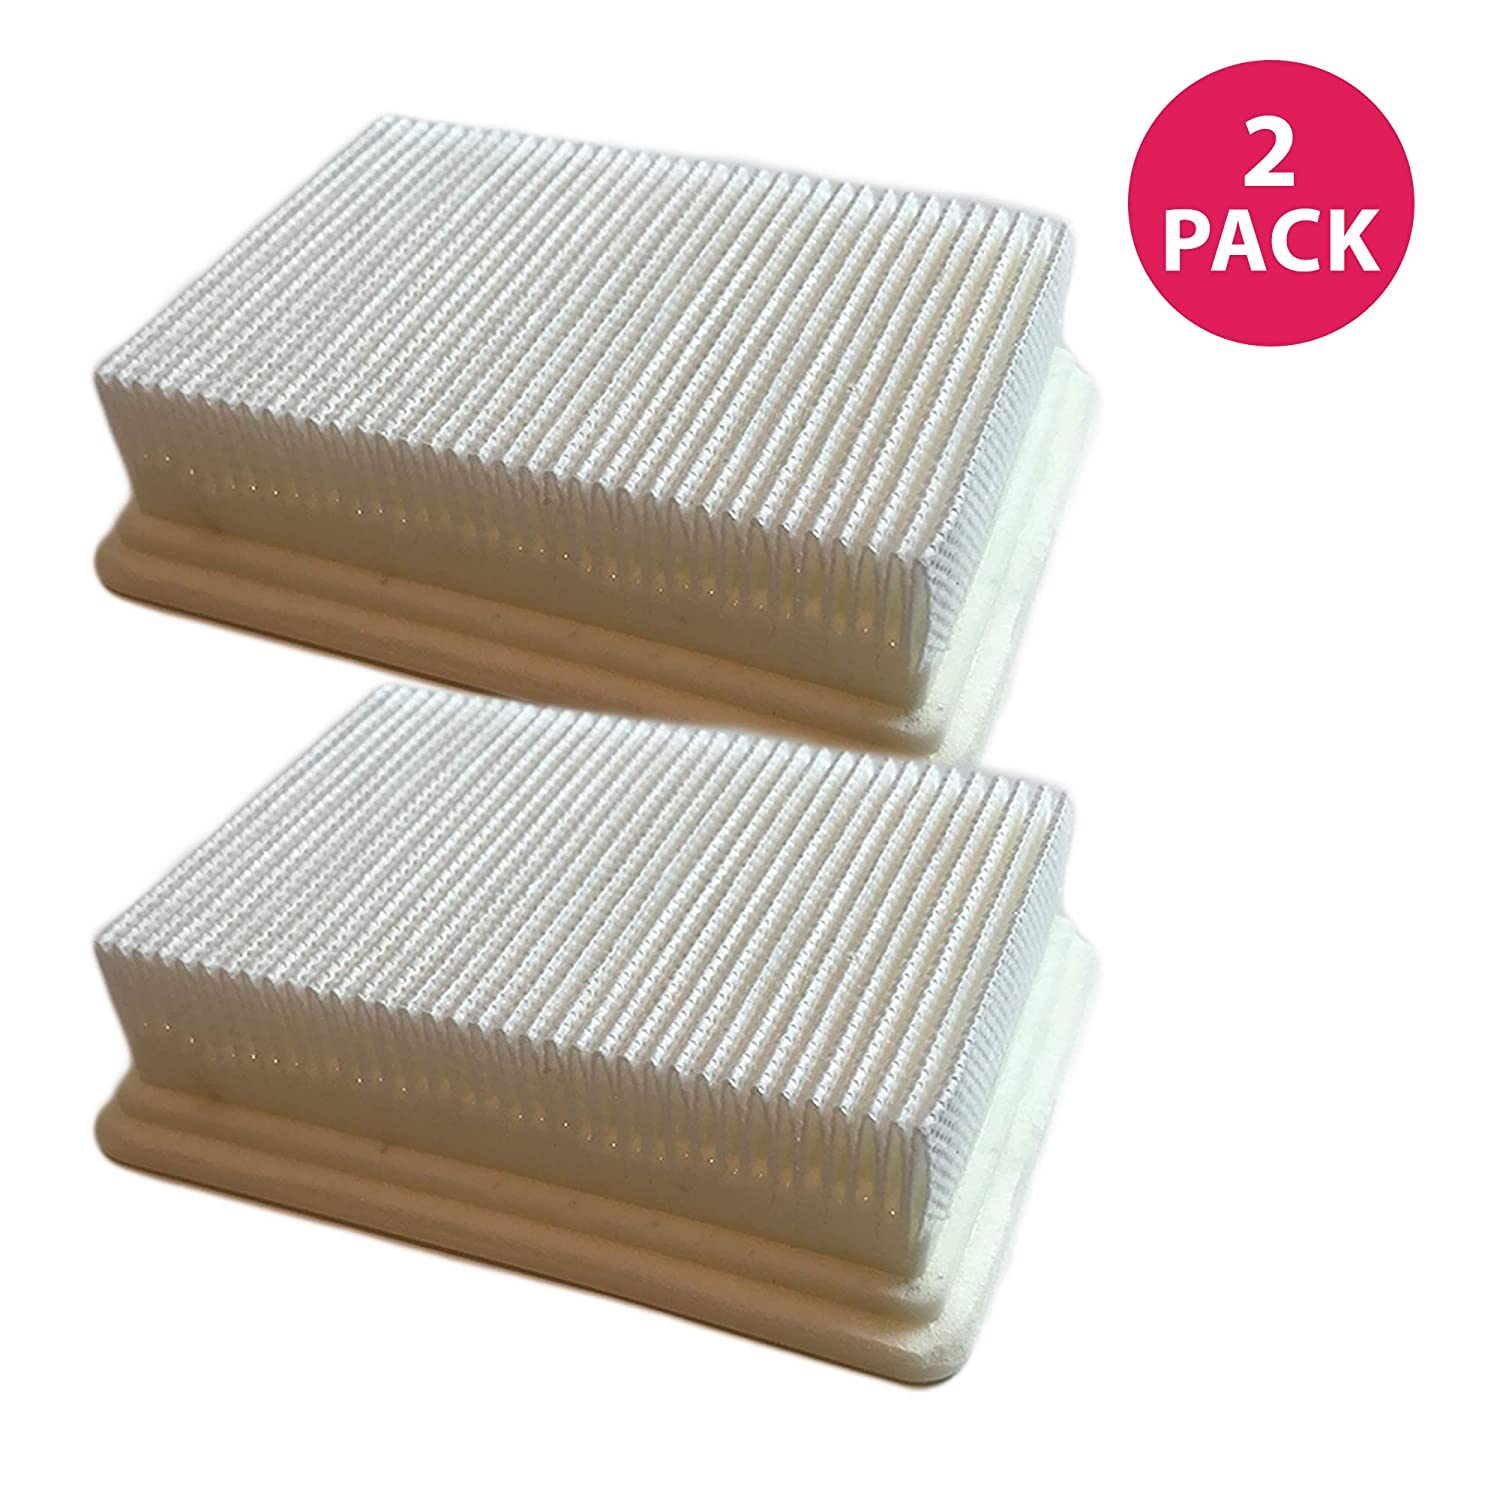 "Crucial Vacuum Filter Replacement Parts # 40112050, 59177051 - Compatible with Hoover Filters - Fits Hoover Floormate Filter HEPA-Style for Home, Office Use - Measures 4.4"" X 3.6"" X 1.1"" (2 Pack)"